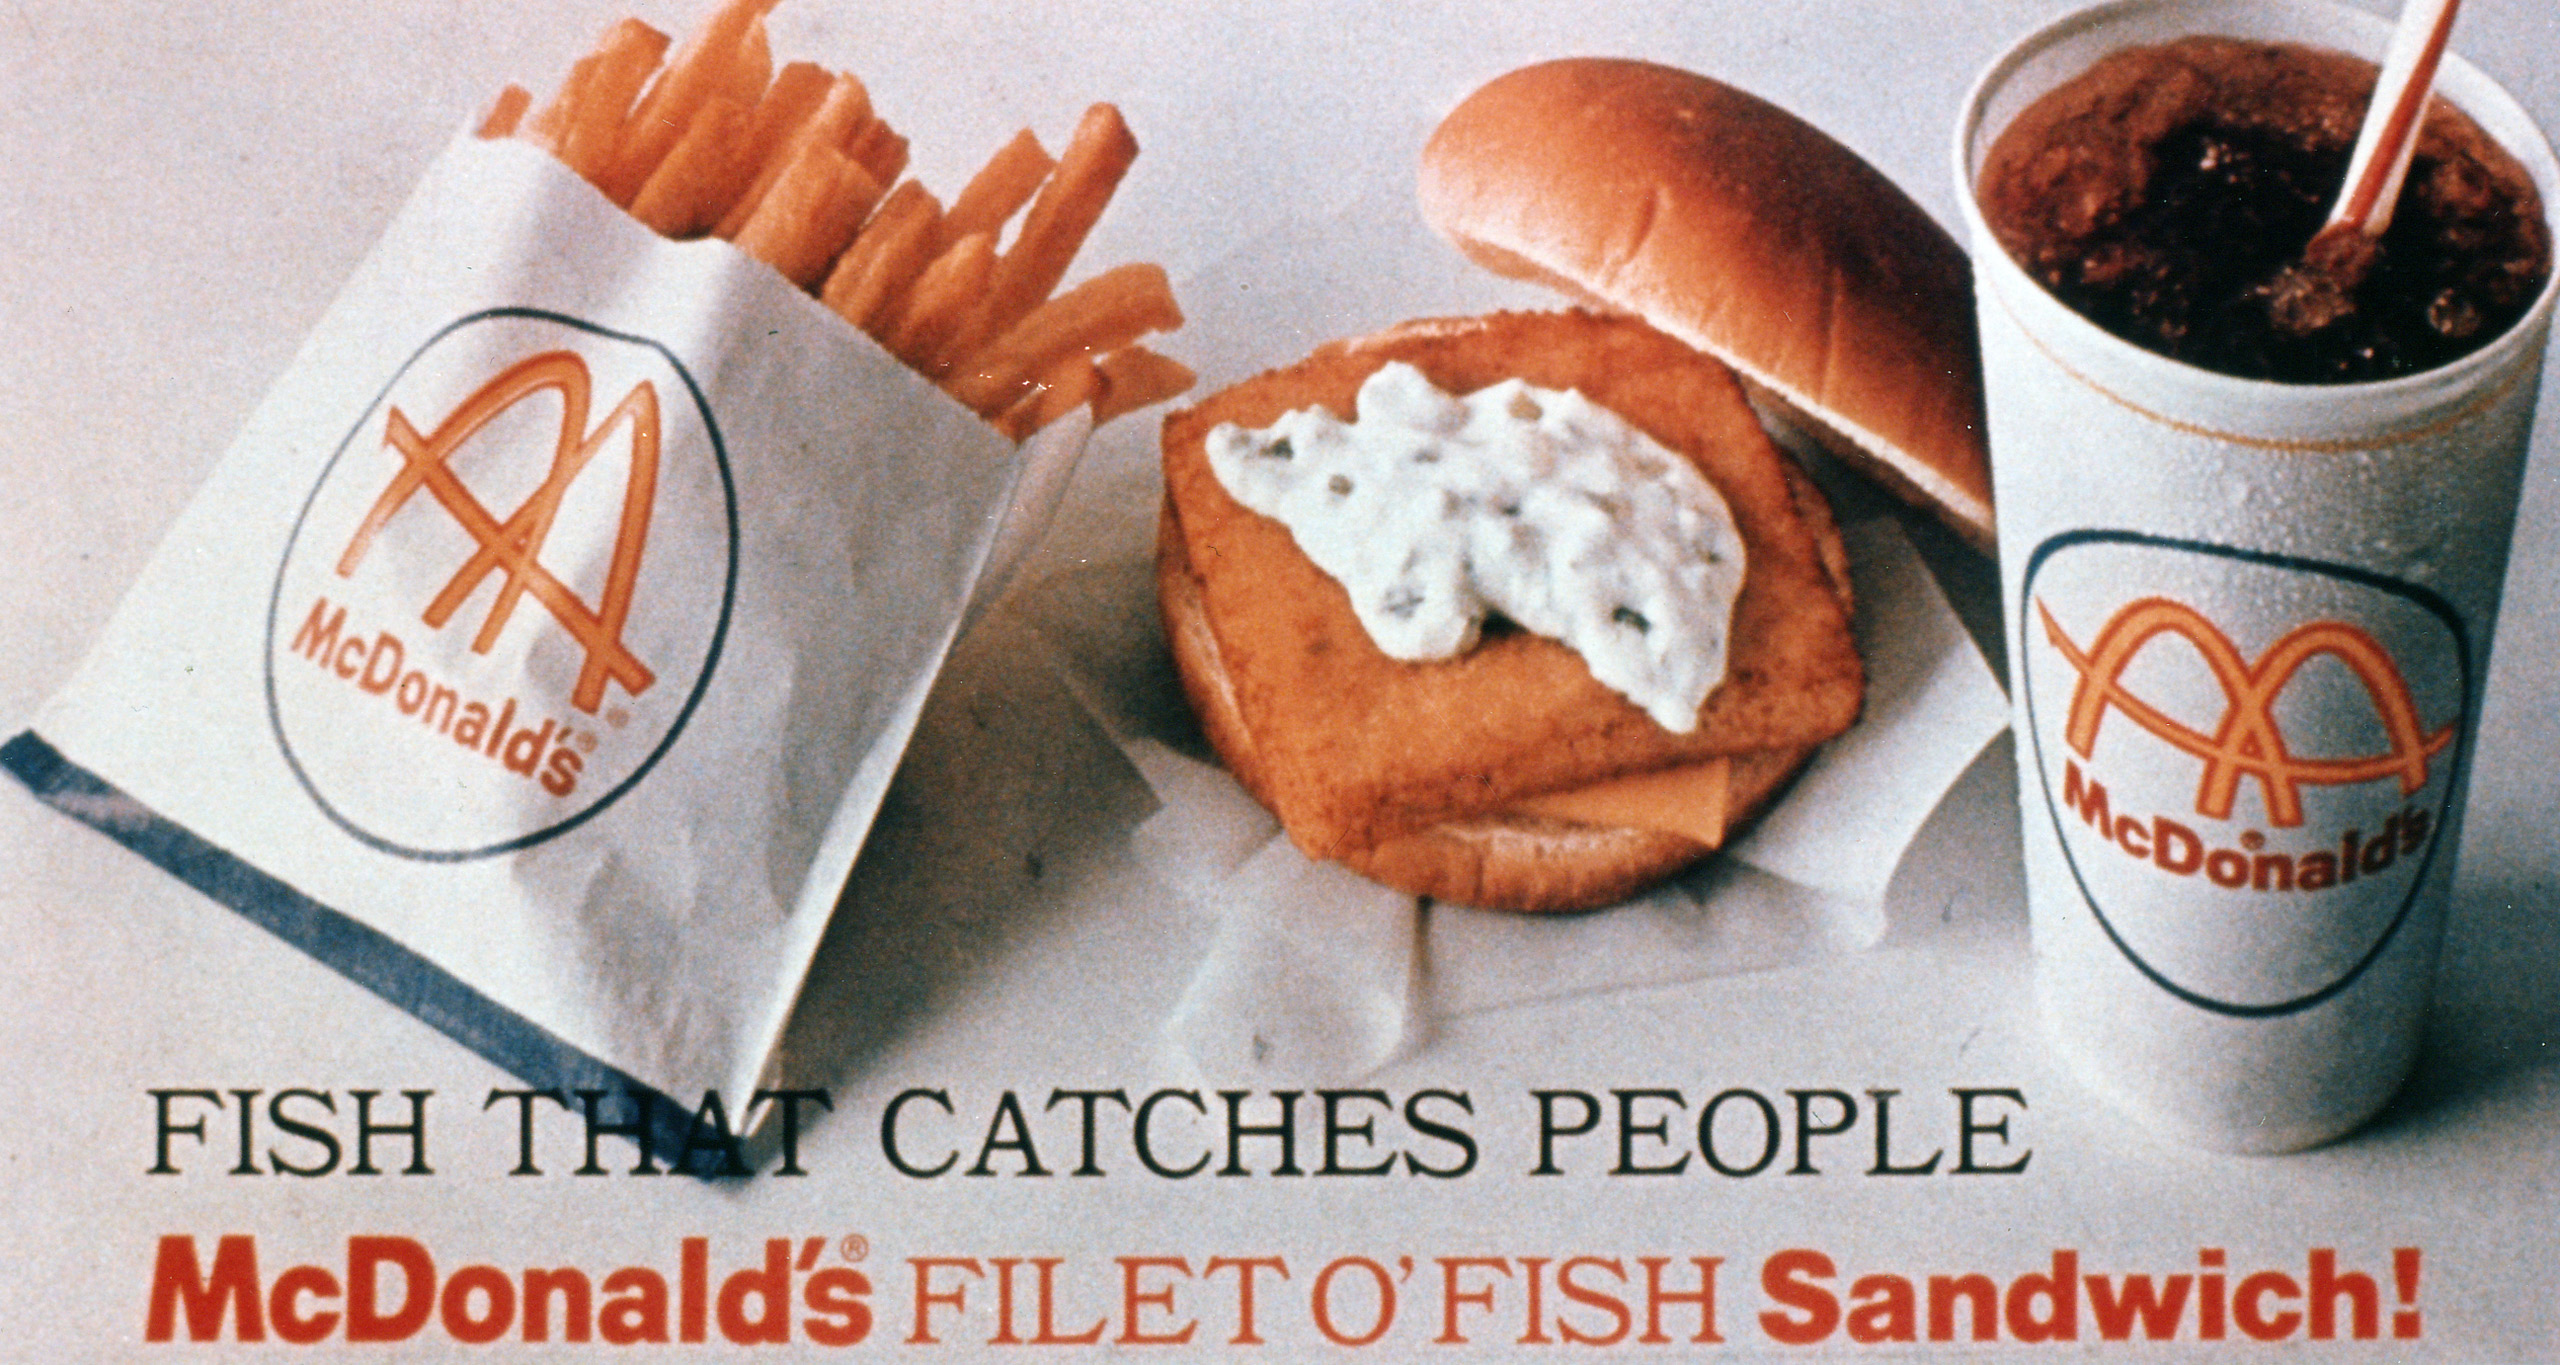 The Filet-O-Fish Sandwich, the first new item added to the McDonald's menu, in 1965.